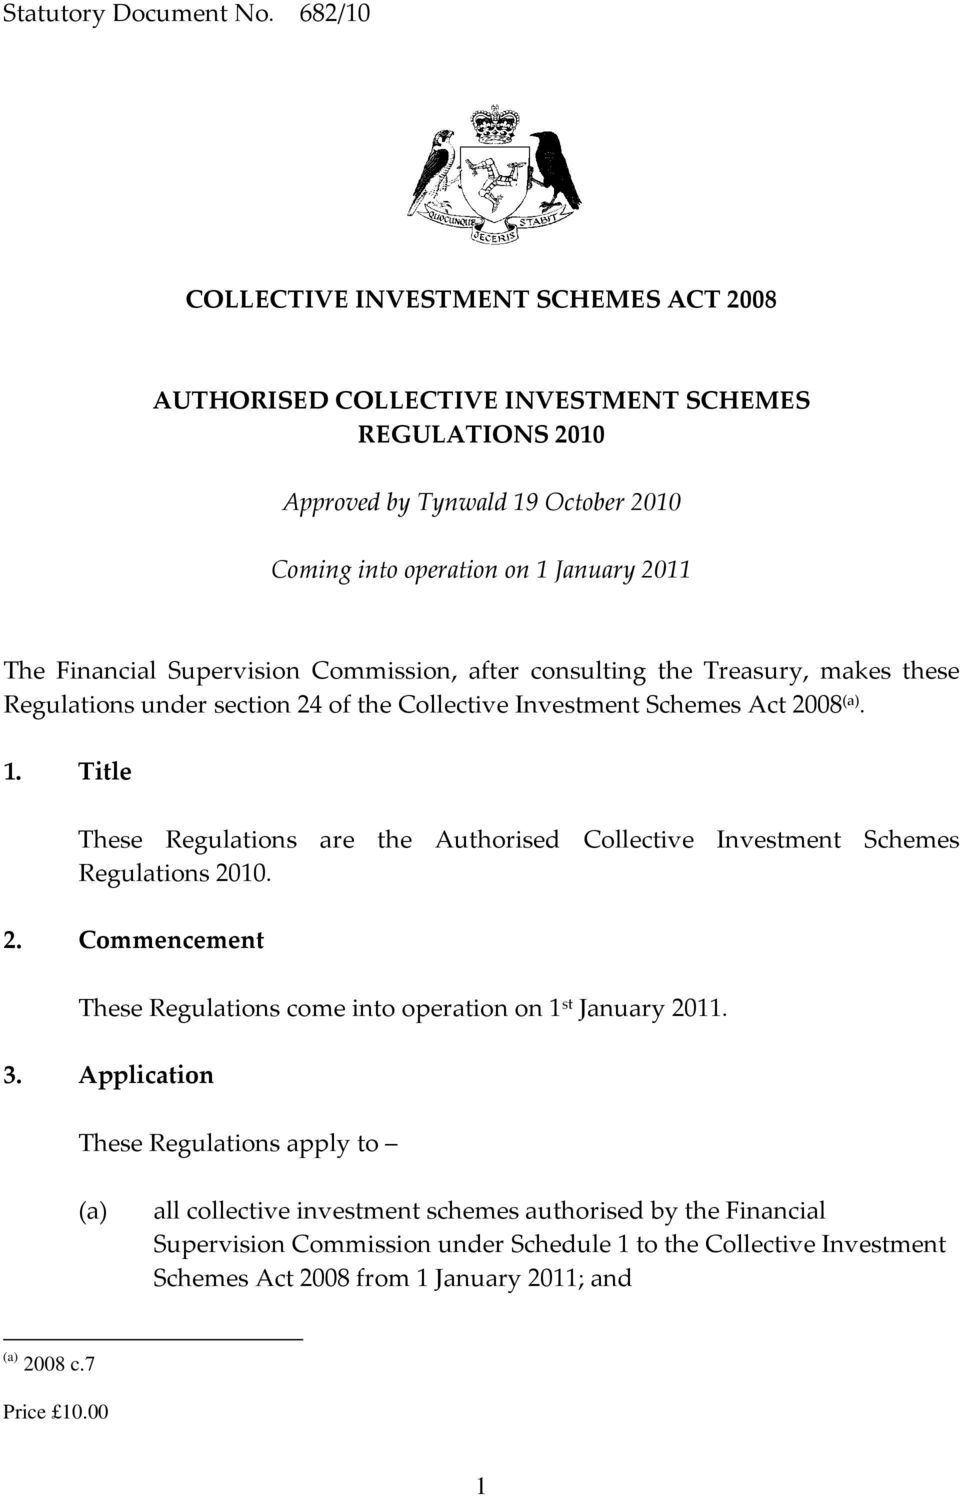 Financial Supervision Commission, after consulting the Treasury, makes these Regulations under section 24 of the Collective Investment Schemes Act 2008. 1.